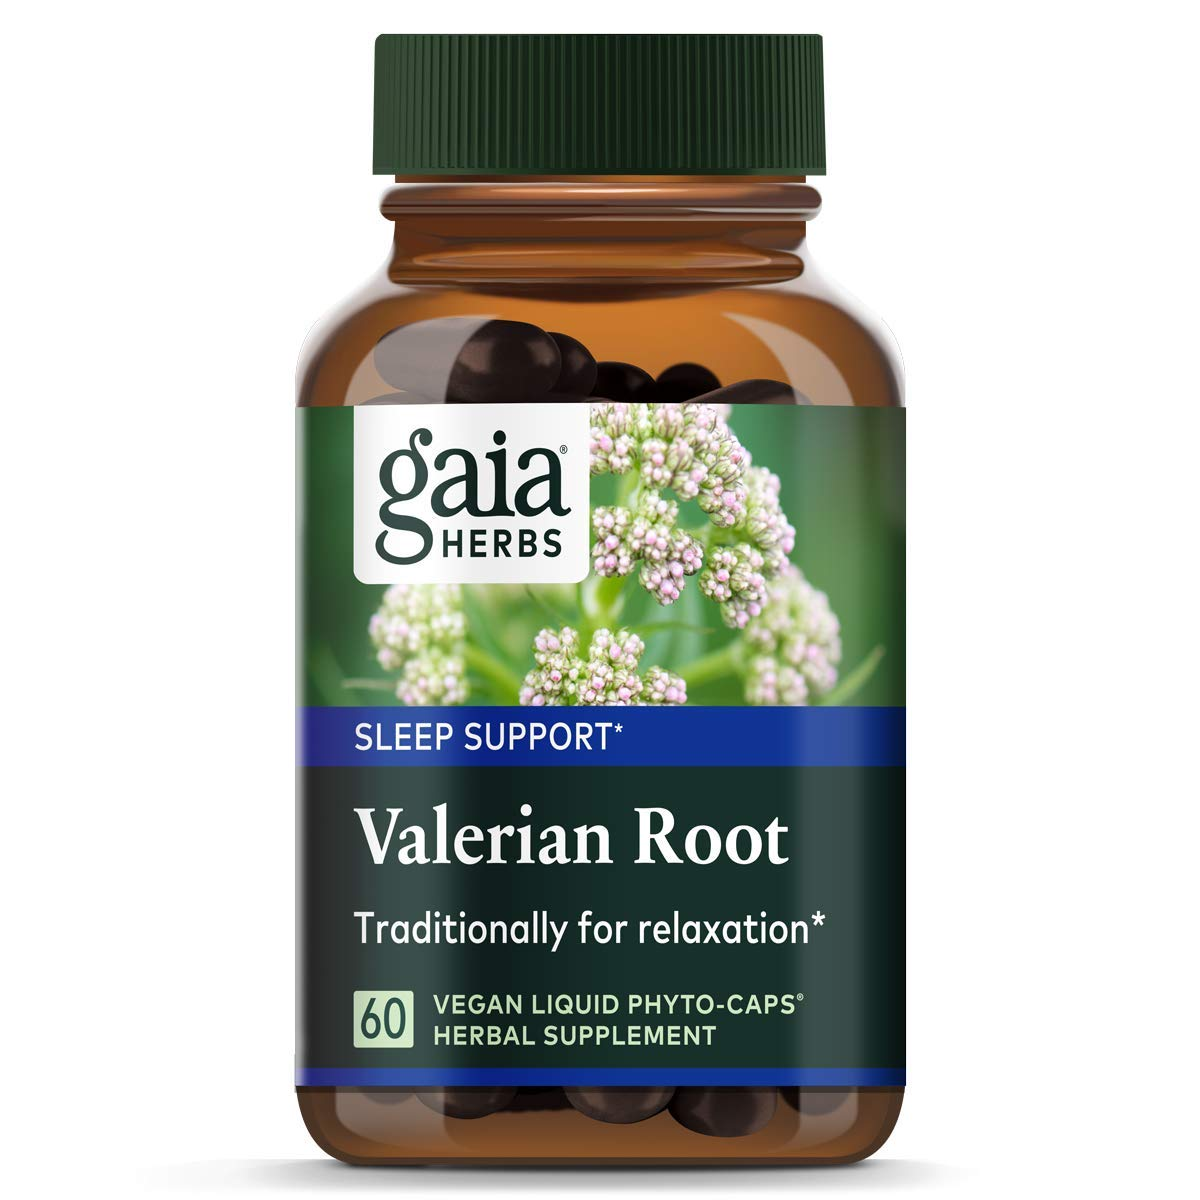 Gaia Herbs Valerian Root, Vegan Liquid Capsules, 60 Count - Relaxing Natural Sleep Aid with No Melatonin, Non-Habit Forming